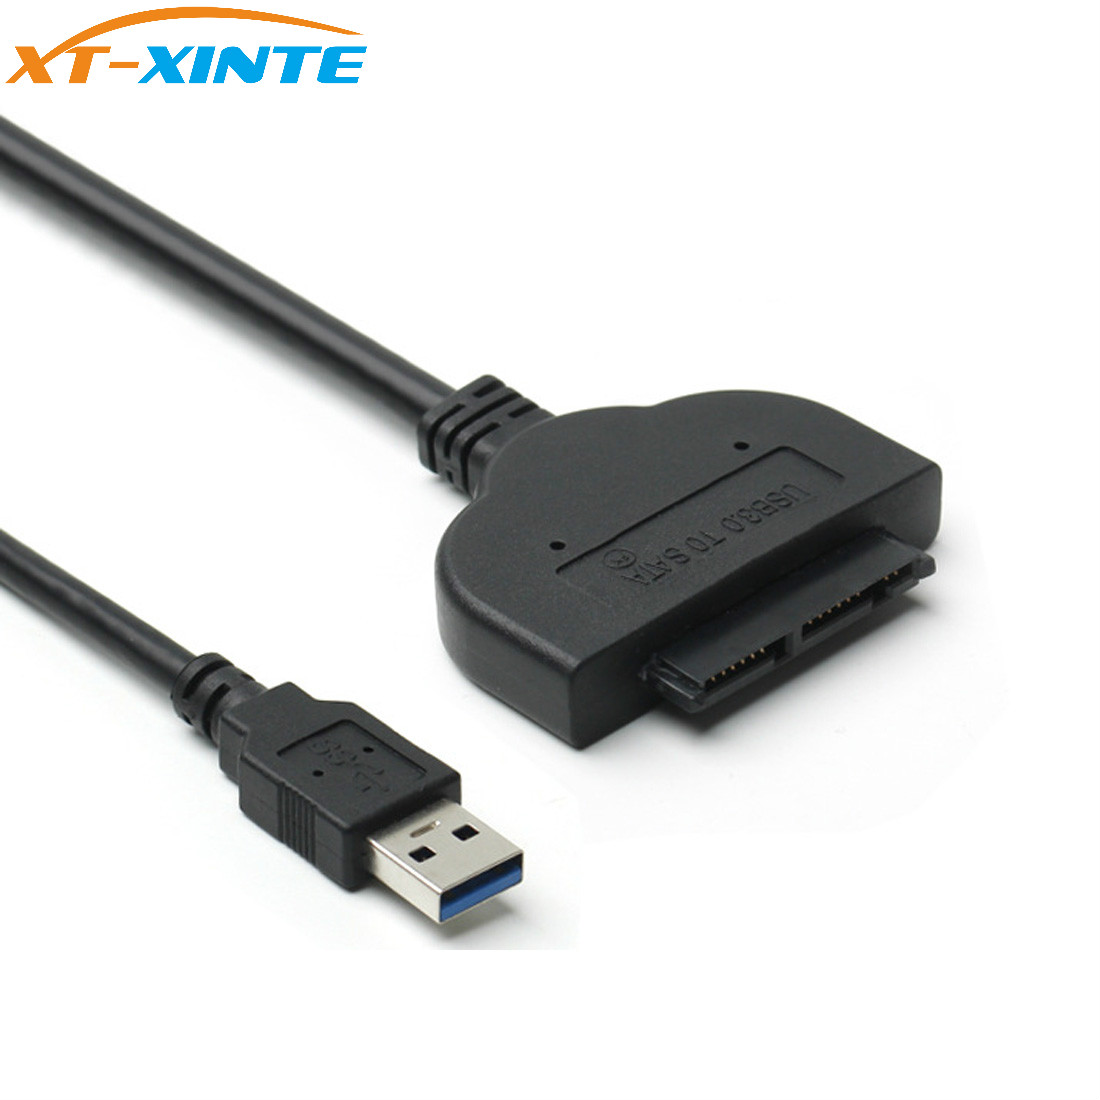 USB SATA Adapter USB 3.0 to Micro SATA 7+9 16Pin Cable 40cm External Hard Drive Converter for USB3.0 1.8 HDD Converter Cord adjustable short straight clutch brake levers for suzuki sv tl 1000 s r 1998 1999 2000 2001 2002 2003 98 99 00 01 02 03